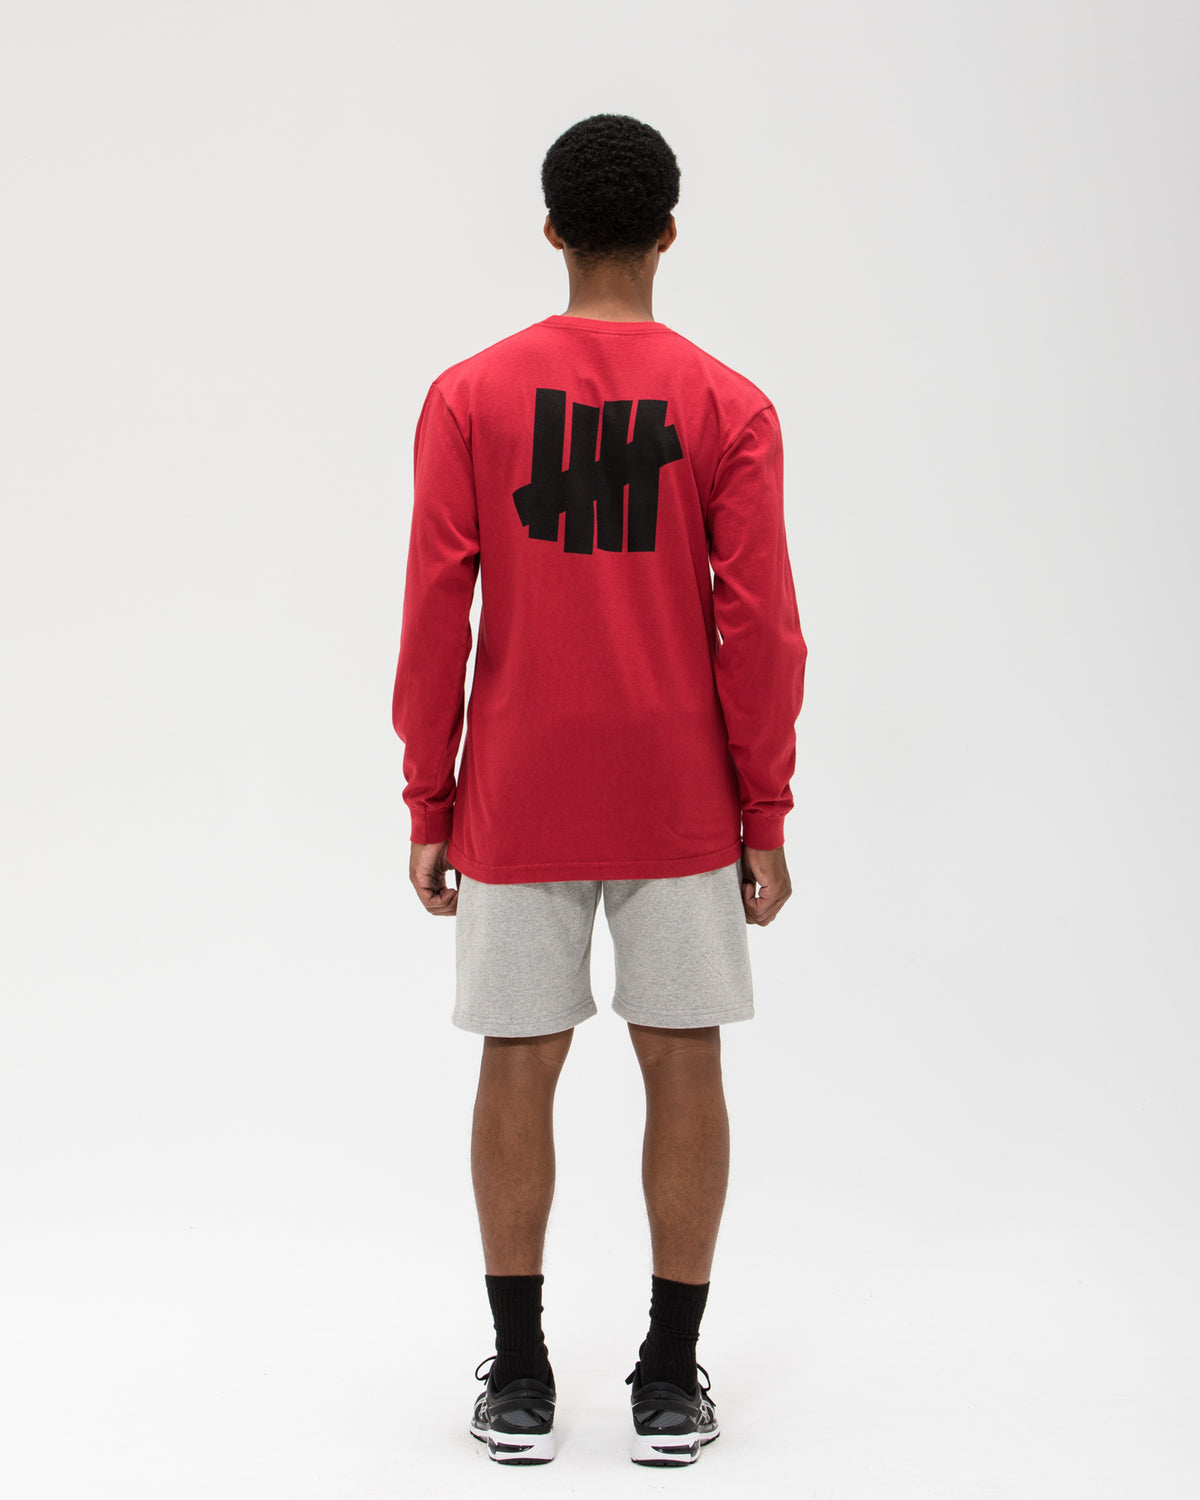 UNDEFEATED ICON L/S TEE